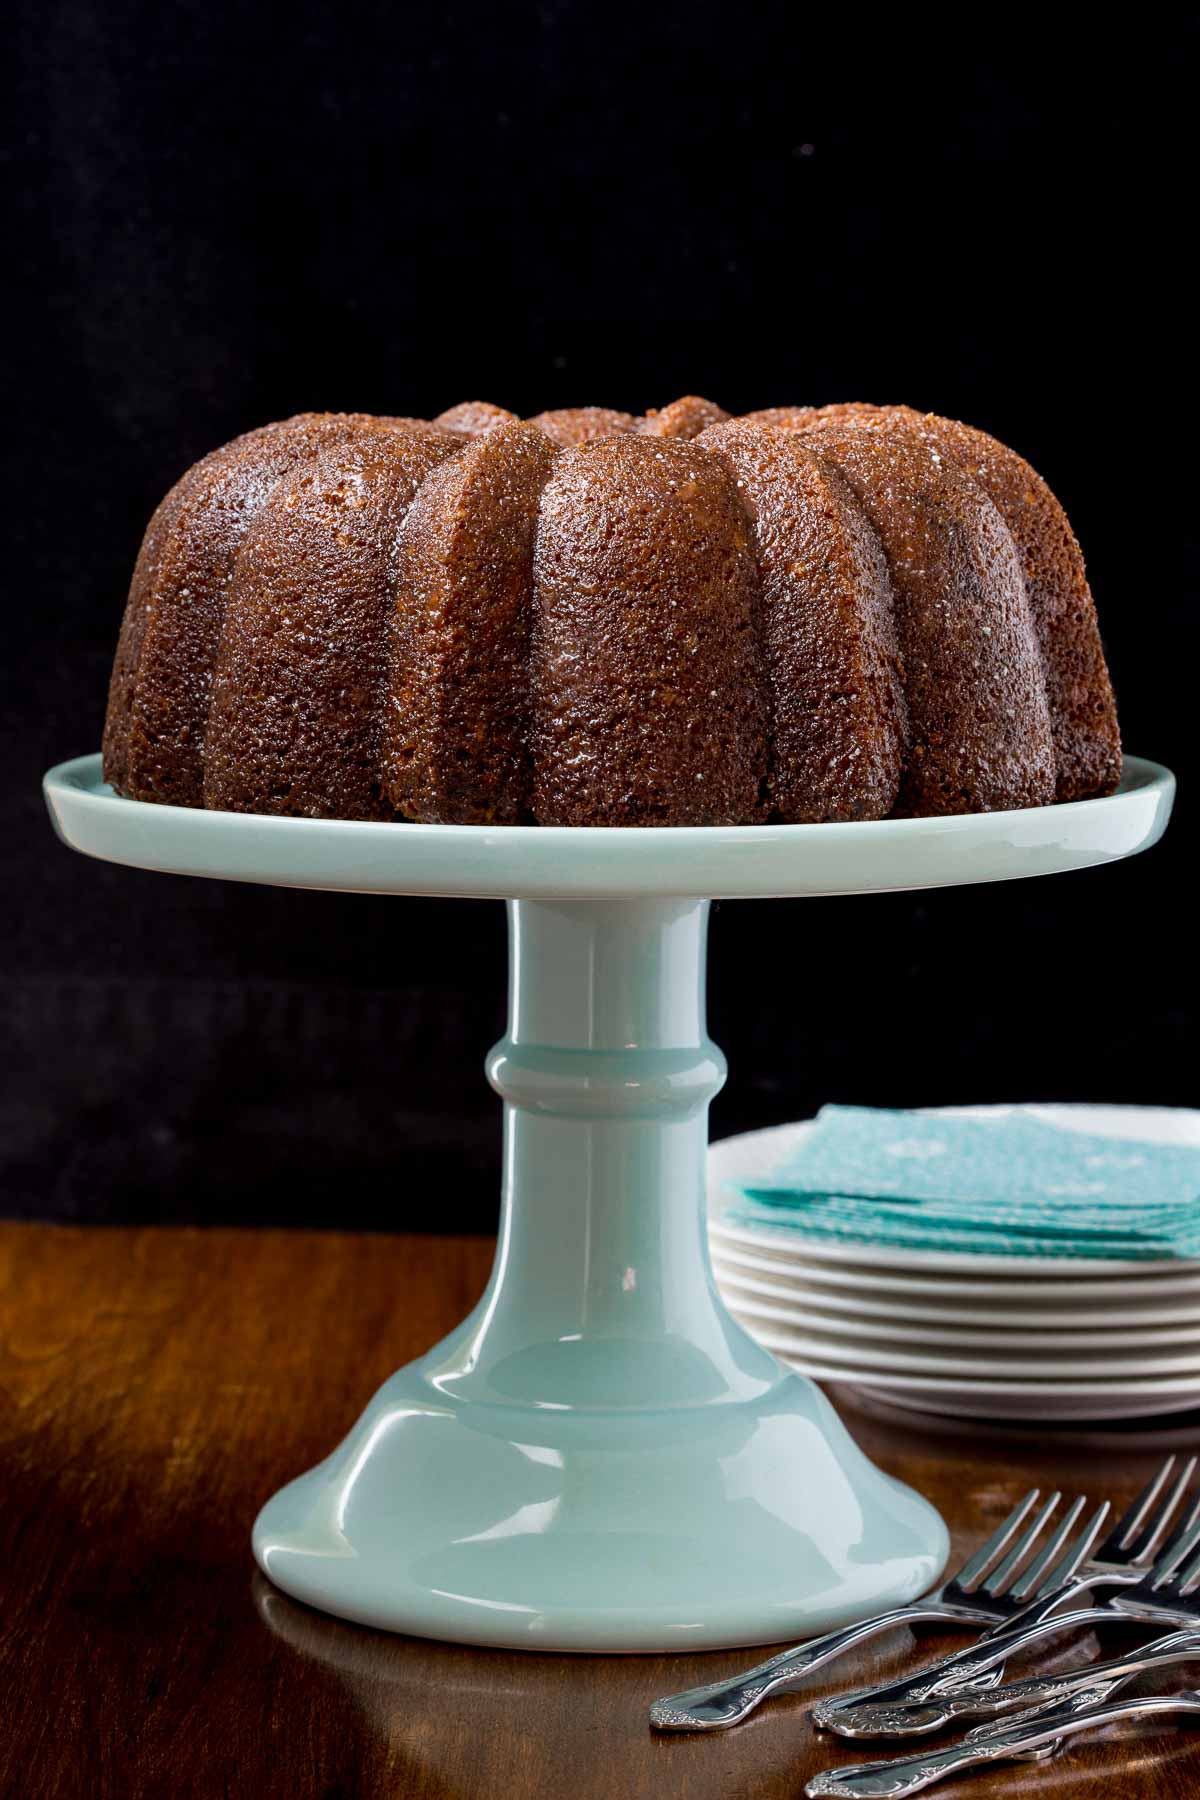 Photo of a Easy Carrot Cake with Buttermilk Glaze on a turquoise cake stand on a wood table.